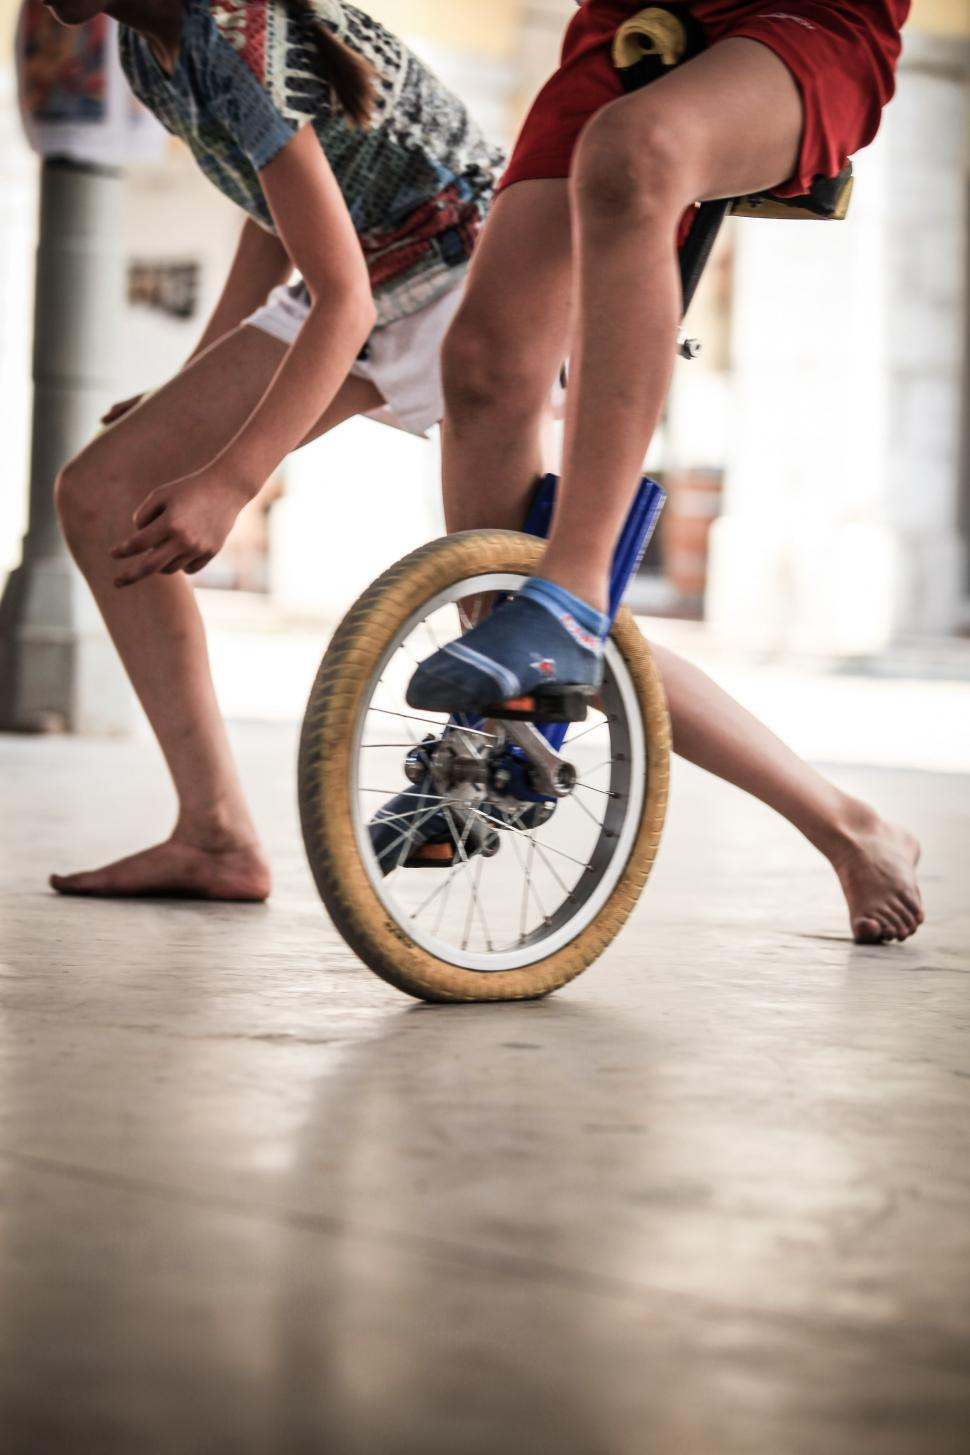 Download Free Stock Photo of Young boy riding a unicycle